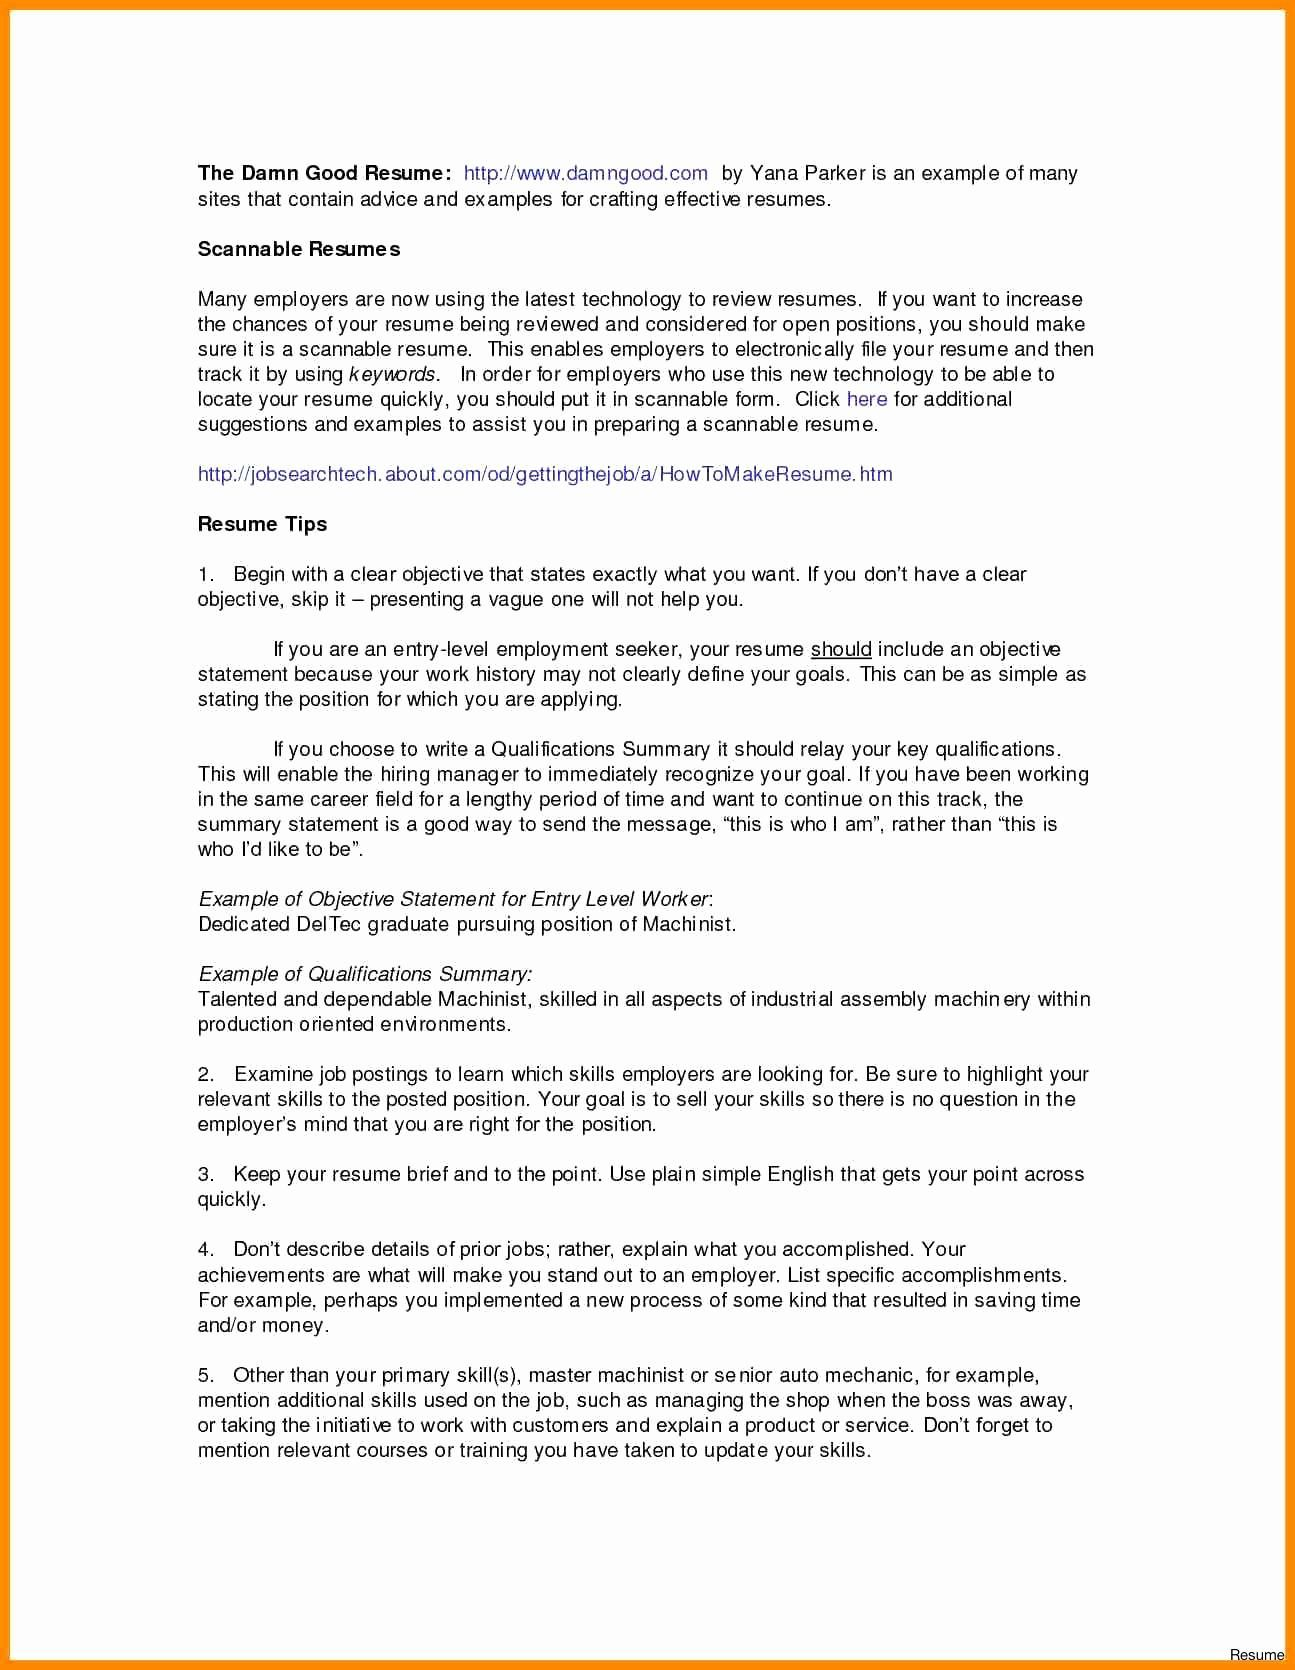 Kinkos Resume Writing Services - Curriculum Vitae Customer Service – 44 Luxury Cover Letter Customer